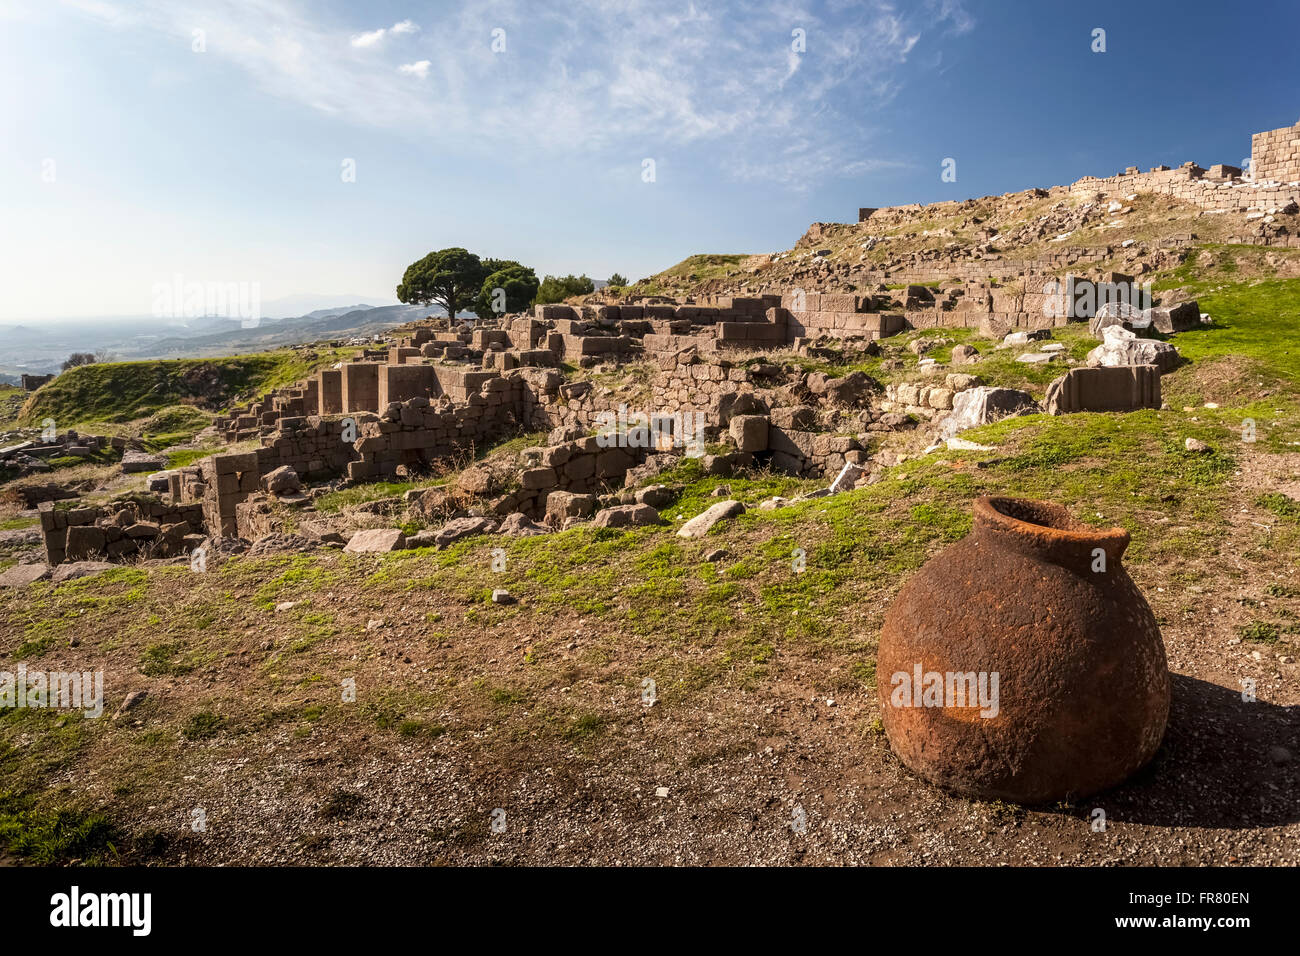 A clay water pot sits at the site of ancient ruins; Pergamum, Turkey - Stock Image